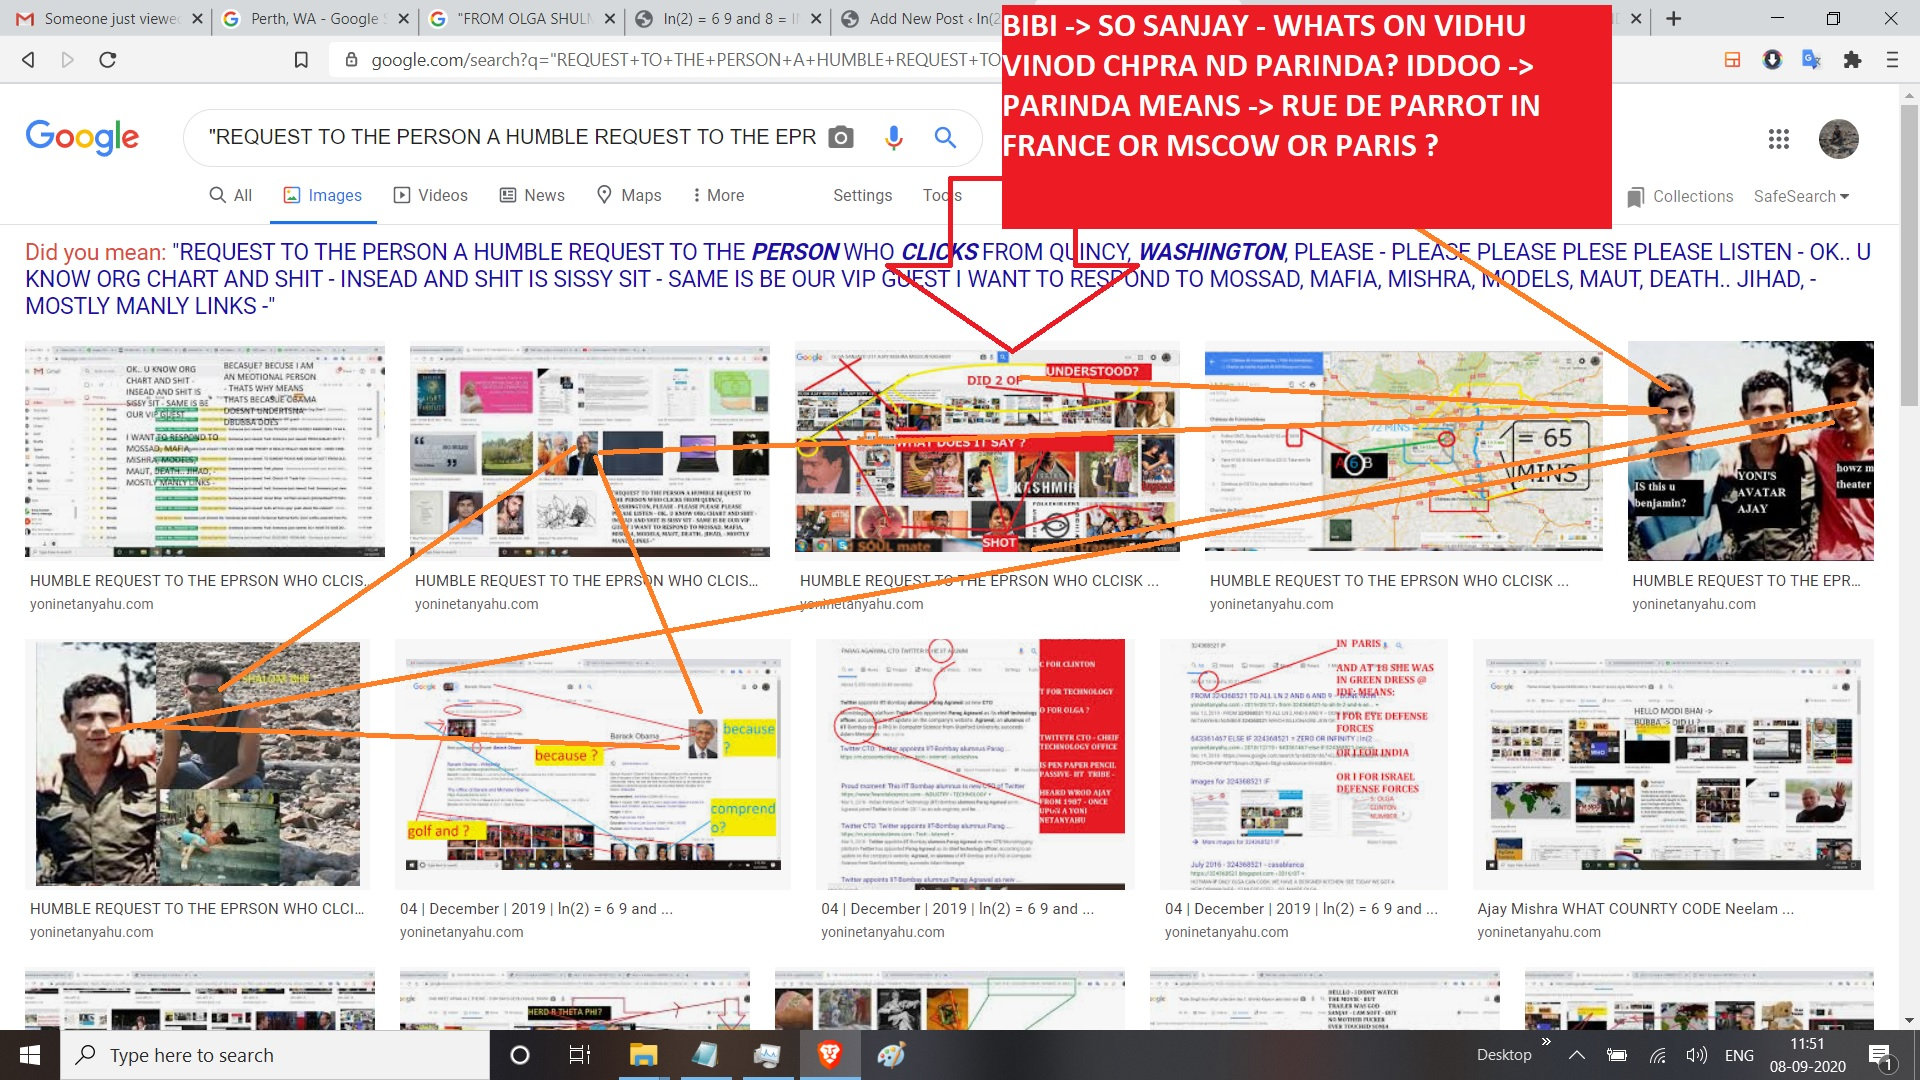 REQUEST TO THE PERSON A HUMBLE REQUEST TO THE EPRSON WHO CLCISK FROM QUINCY, WASHIHNGTN, PLEASE - PLEASE PLEASE PLESE PLEASE LISTEN - OK.. U KNOW ORG CHART AND SHIT - INSEAD AND SHIT IS SISSY SIT - SAME IS BE OUR VIP GUEST I WANT TO RESPOND TO MOSSAD, MAFIA, MISHRA, MODELS, MAUT, DEATH.. JIHAD, - MOSTLY MANLY LINKS